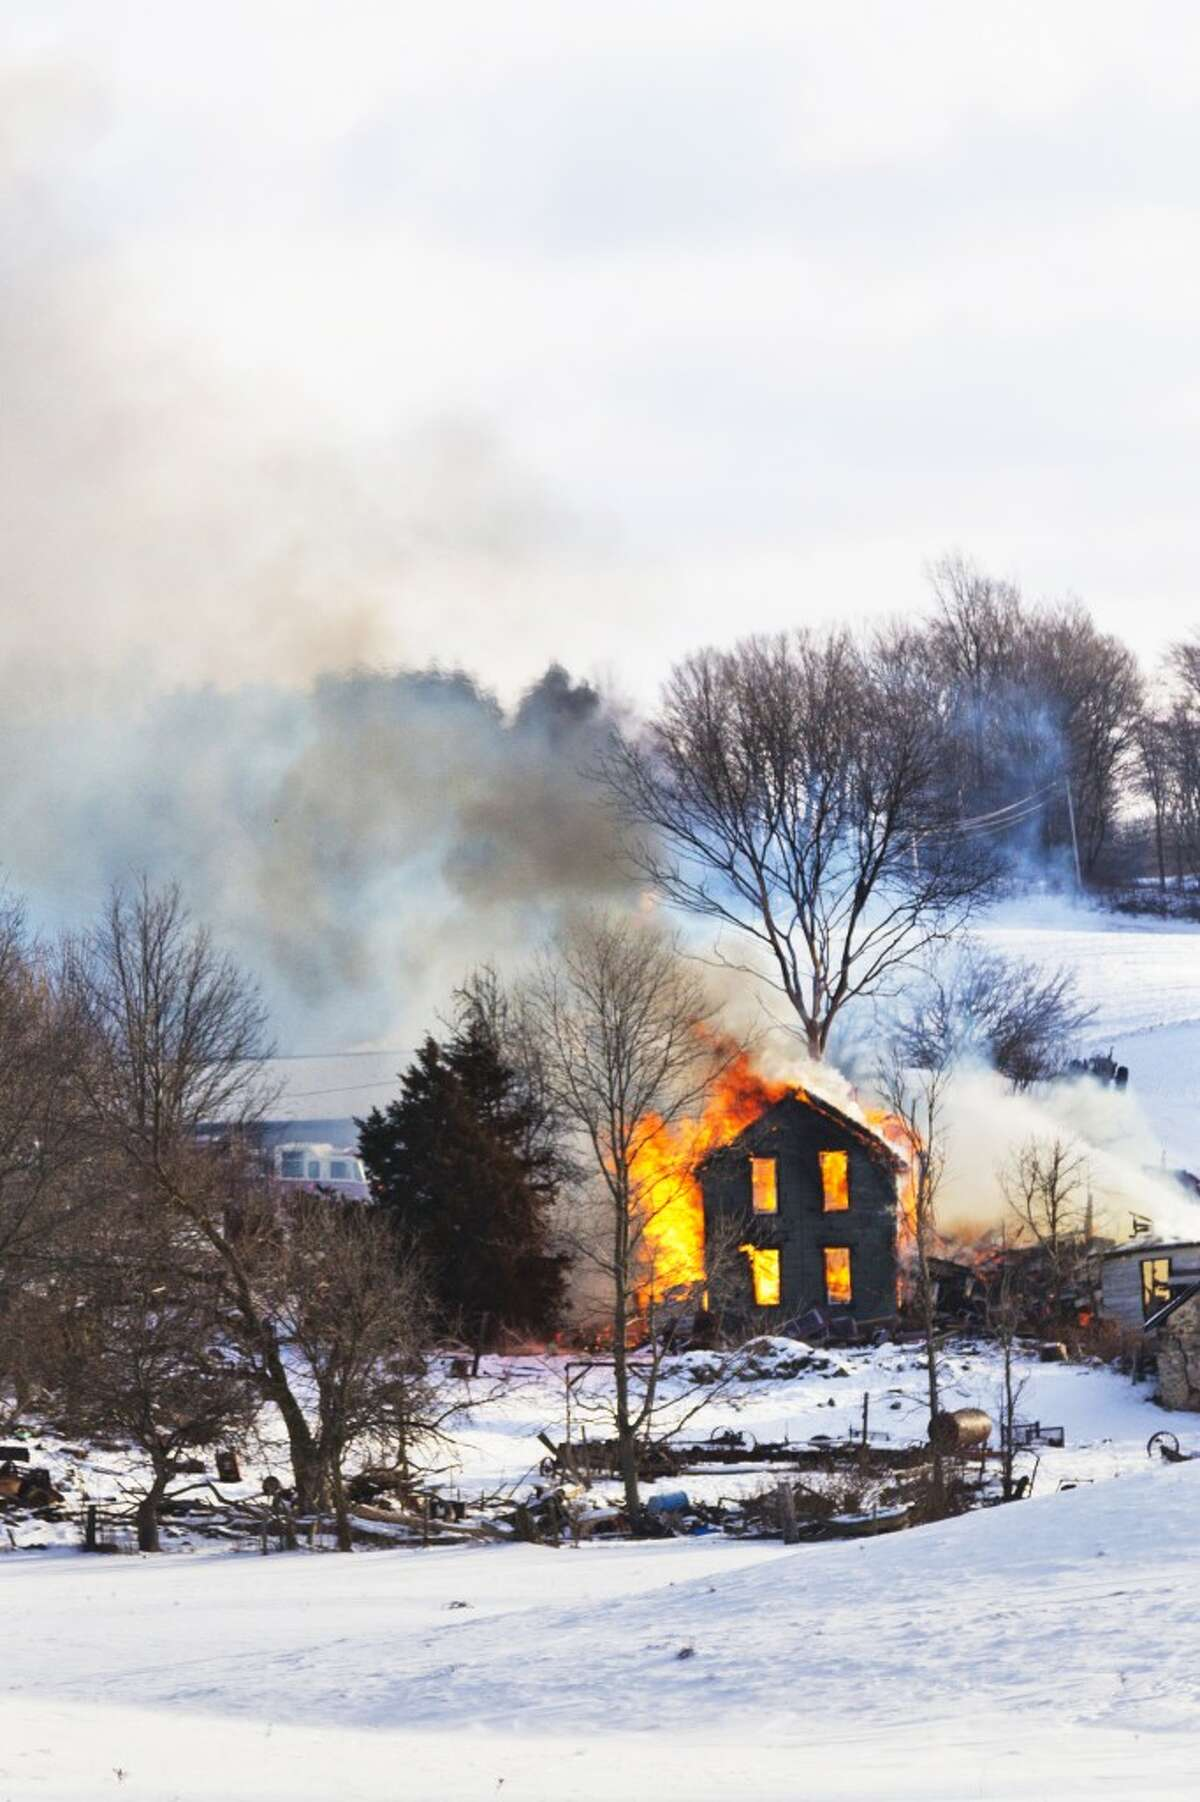 HOUSE DESTROYED: The fire began around 9 a.m. and spread from a wood stove. (Herald Review photo/Justin McKee)